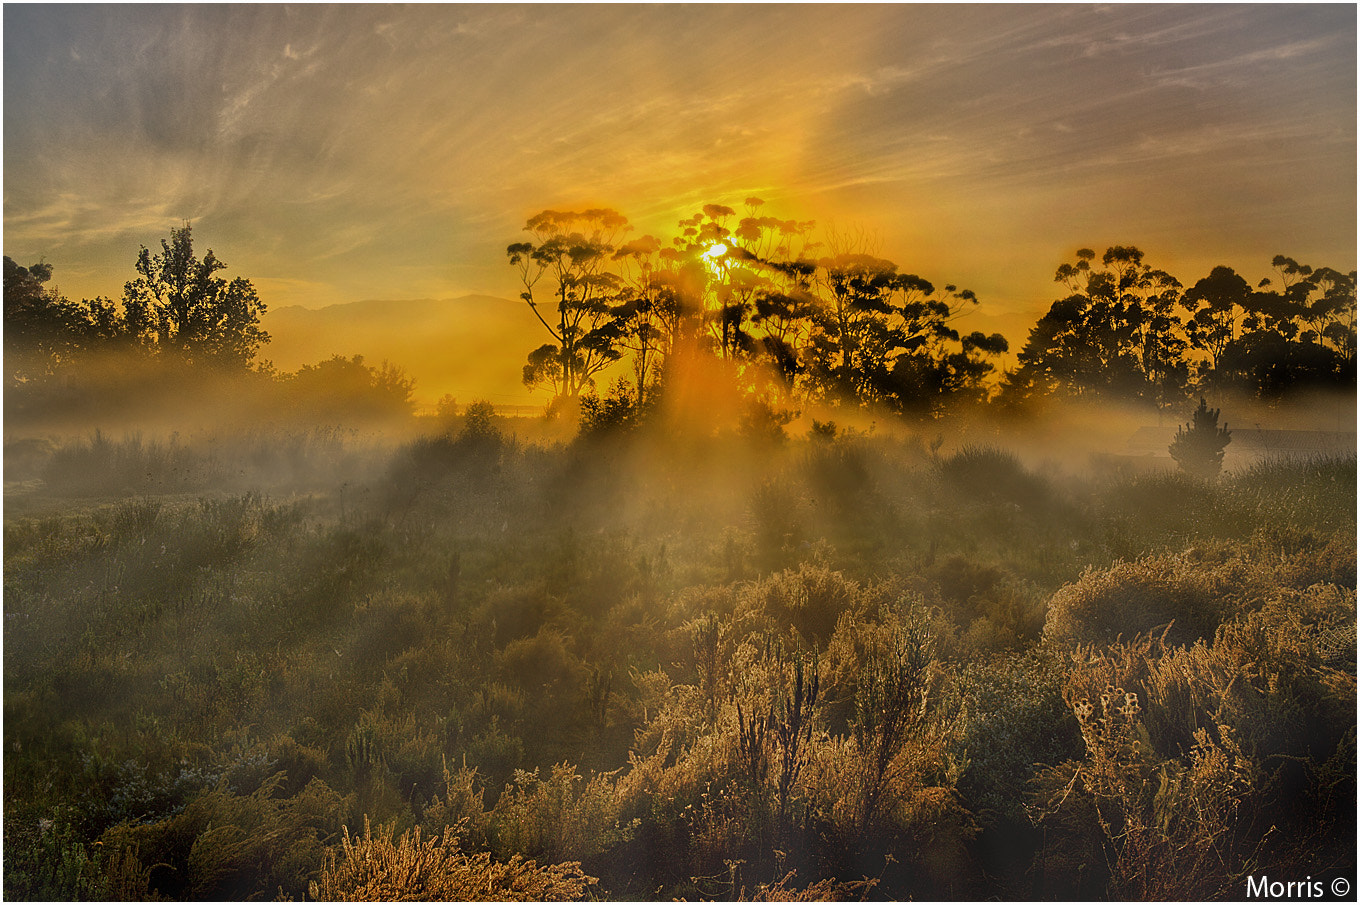 Photograph Misty Mornings in the Cape by Dave Morris on 500px